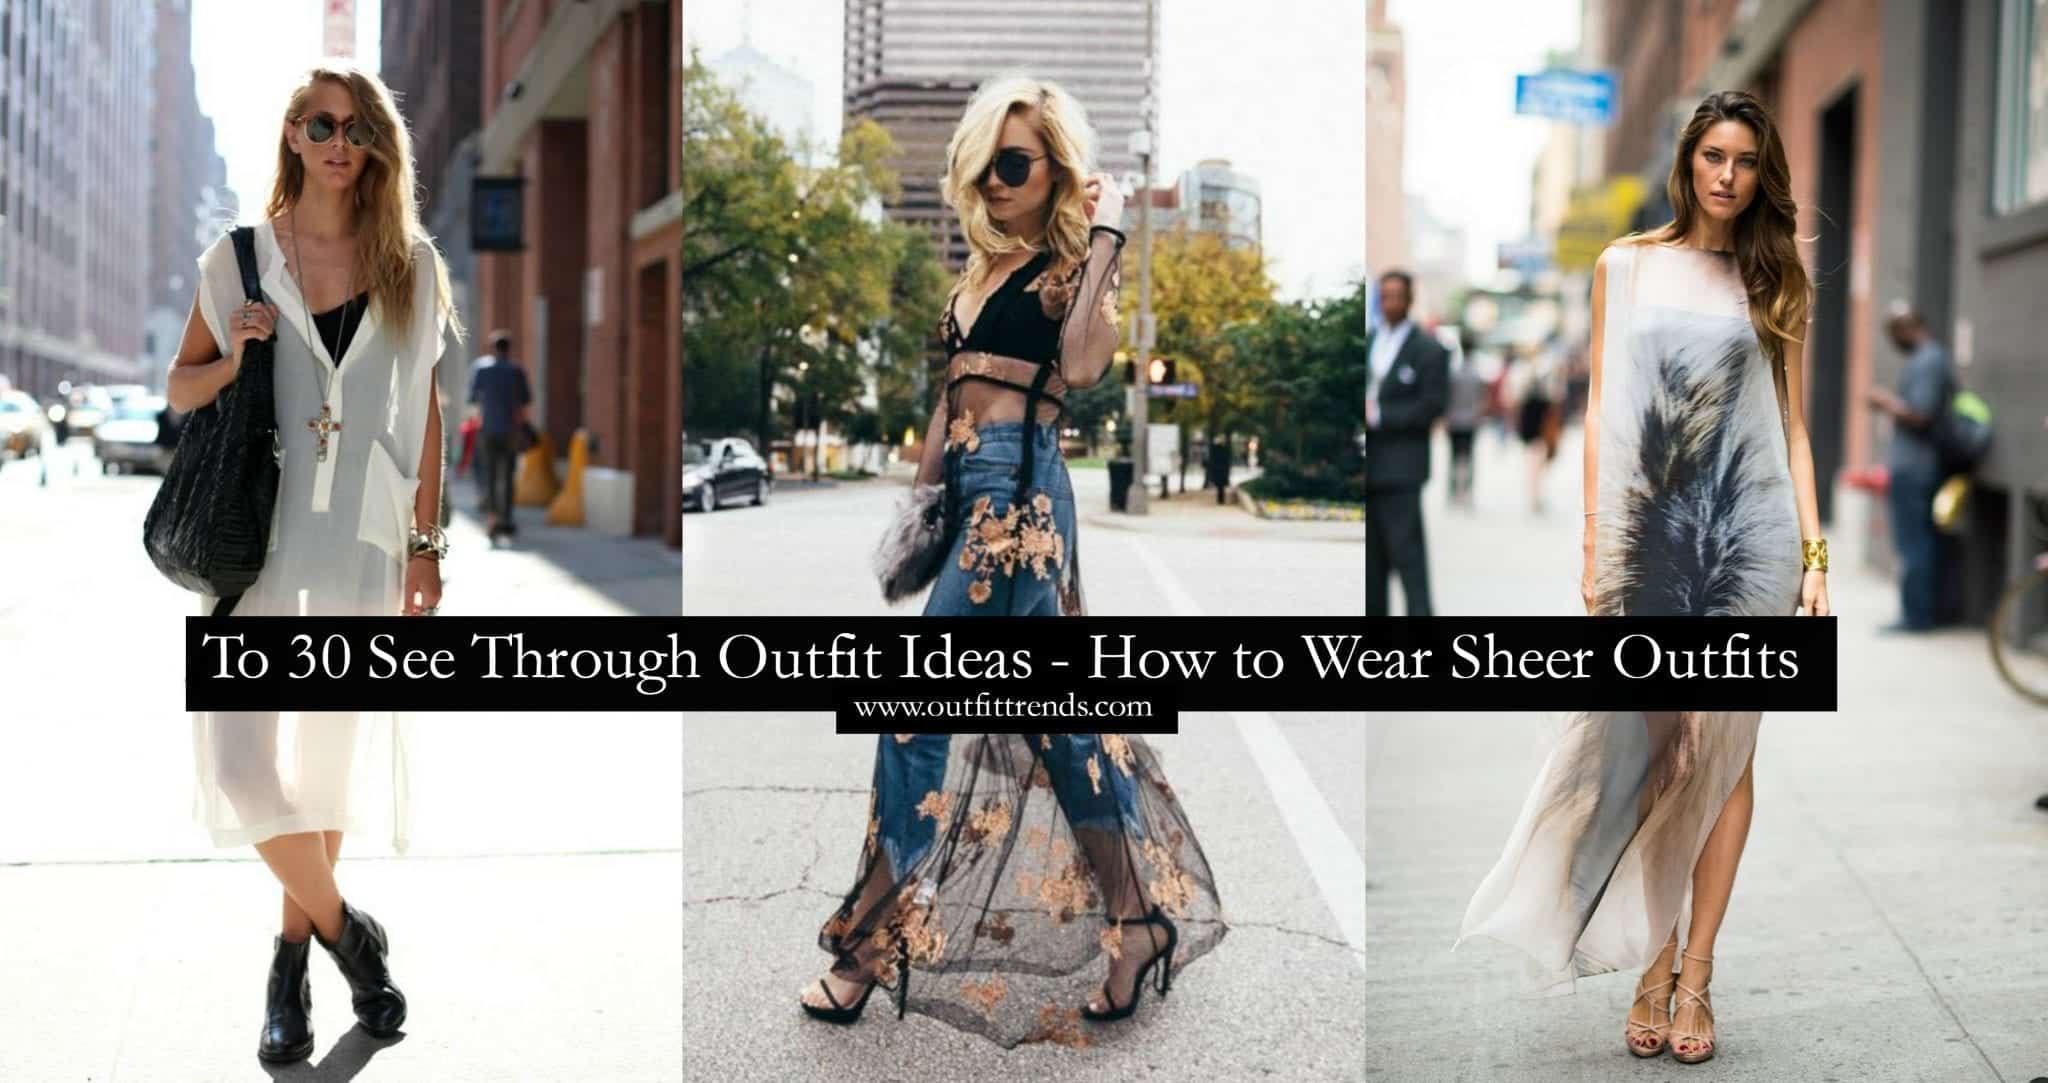 See-Through Outfits Girls-30 Ideas on How to Wear Sheer Outfits aea65ad51